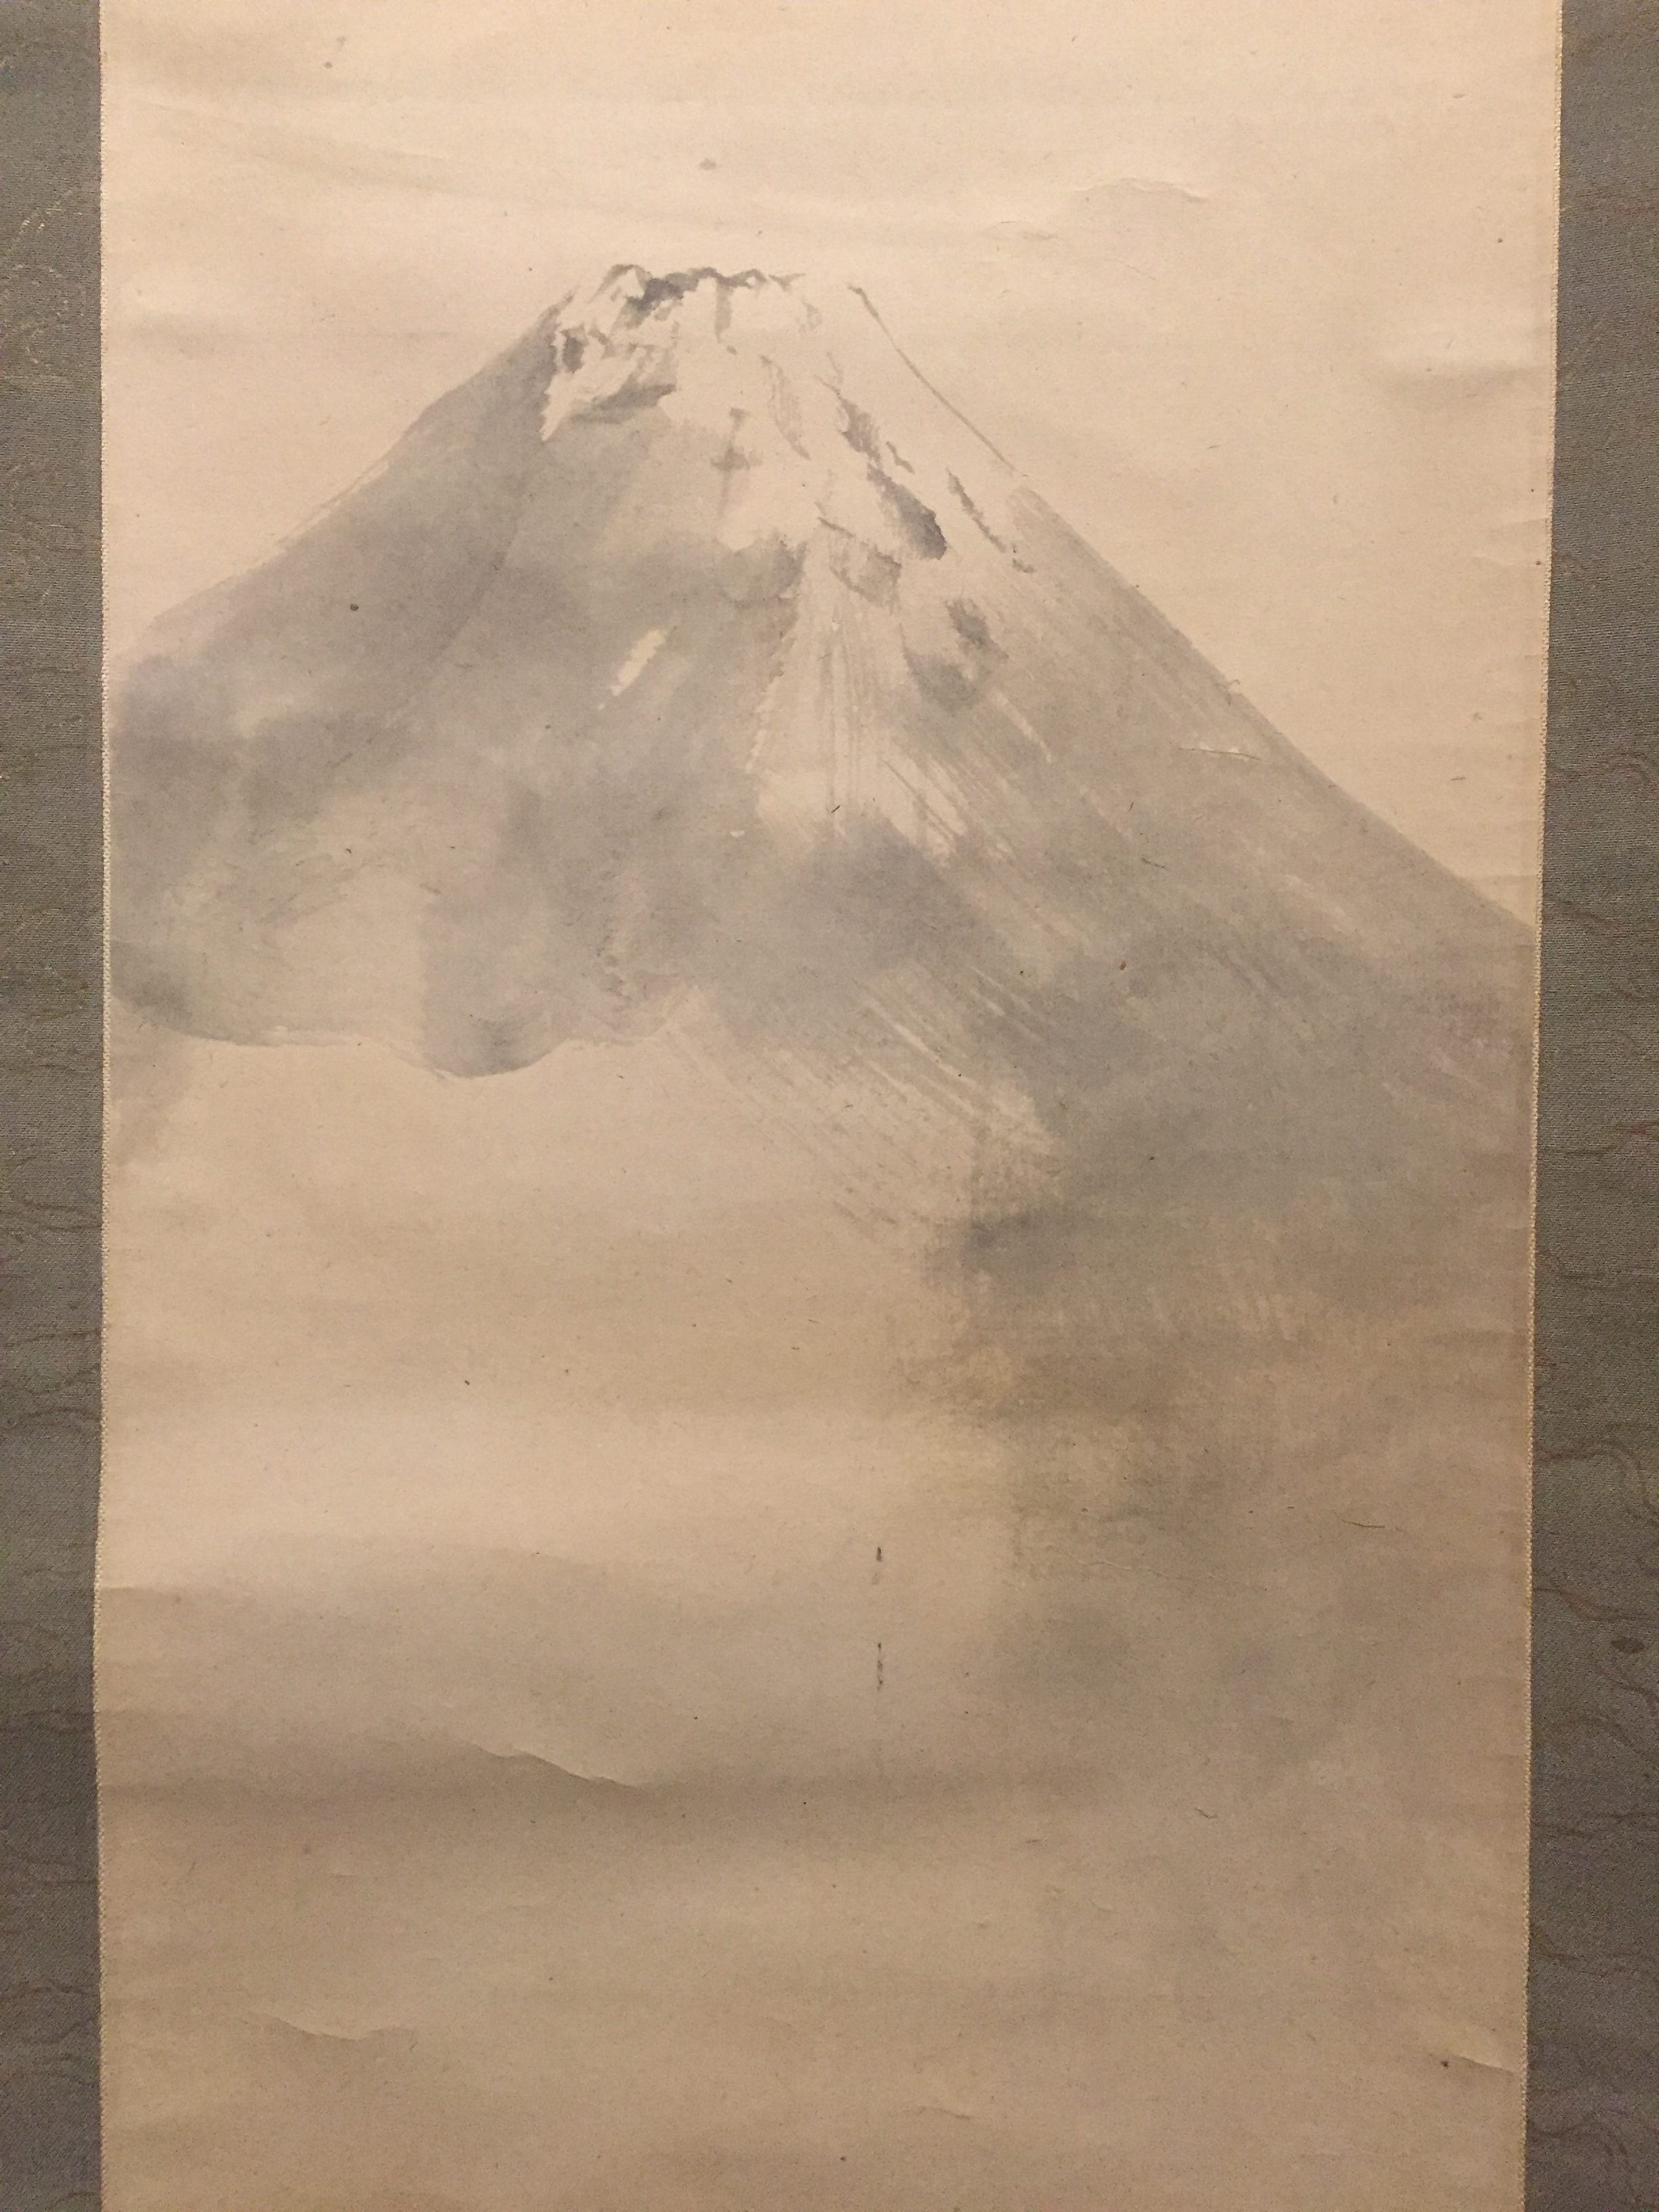 Mt. Fuji has been painted by many artists, in a variety of unique styles, over many centuries.